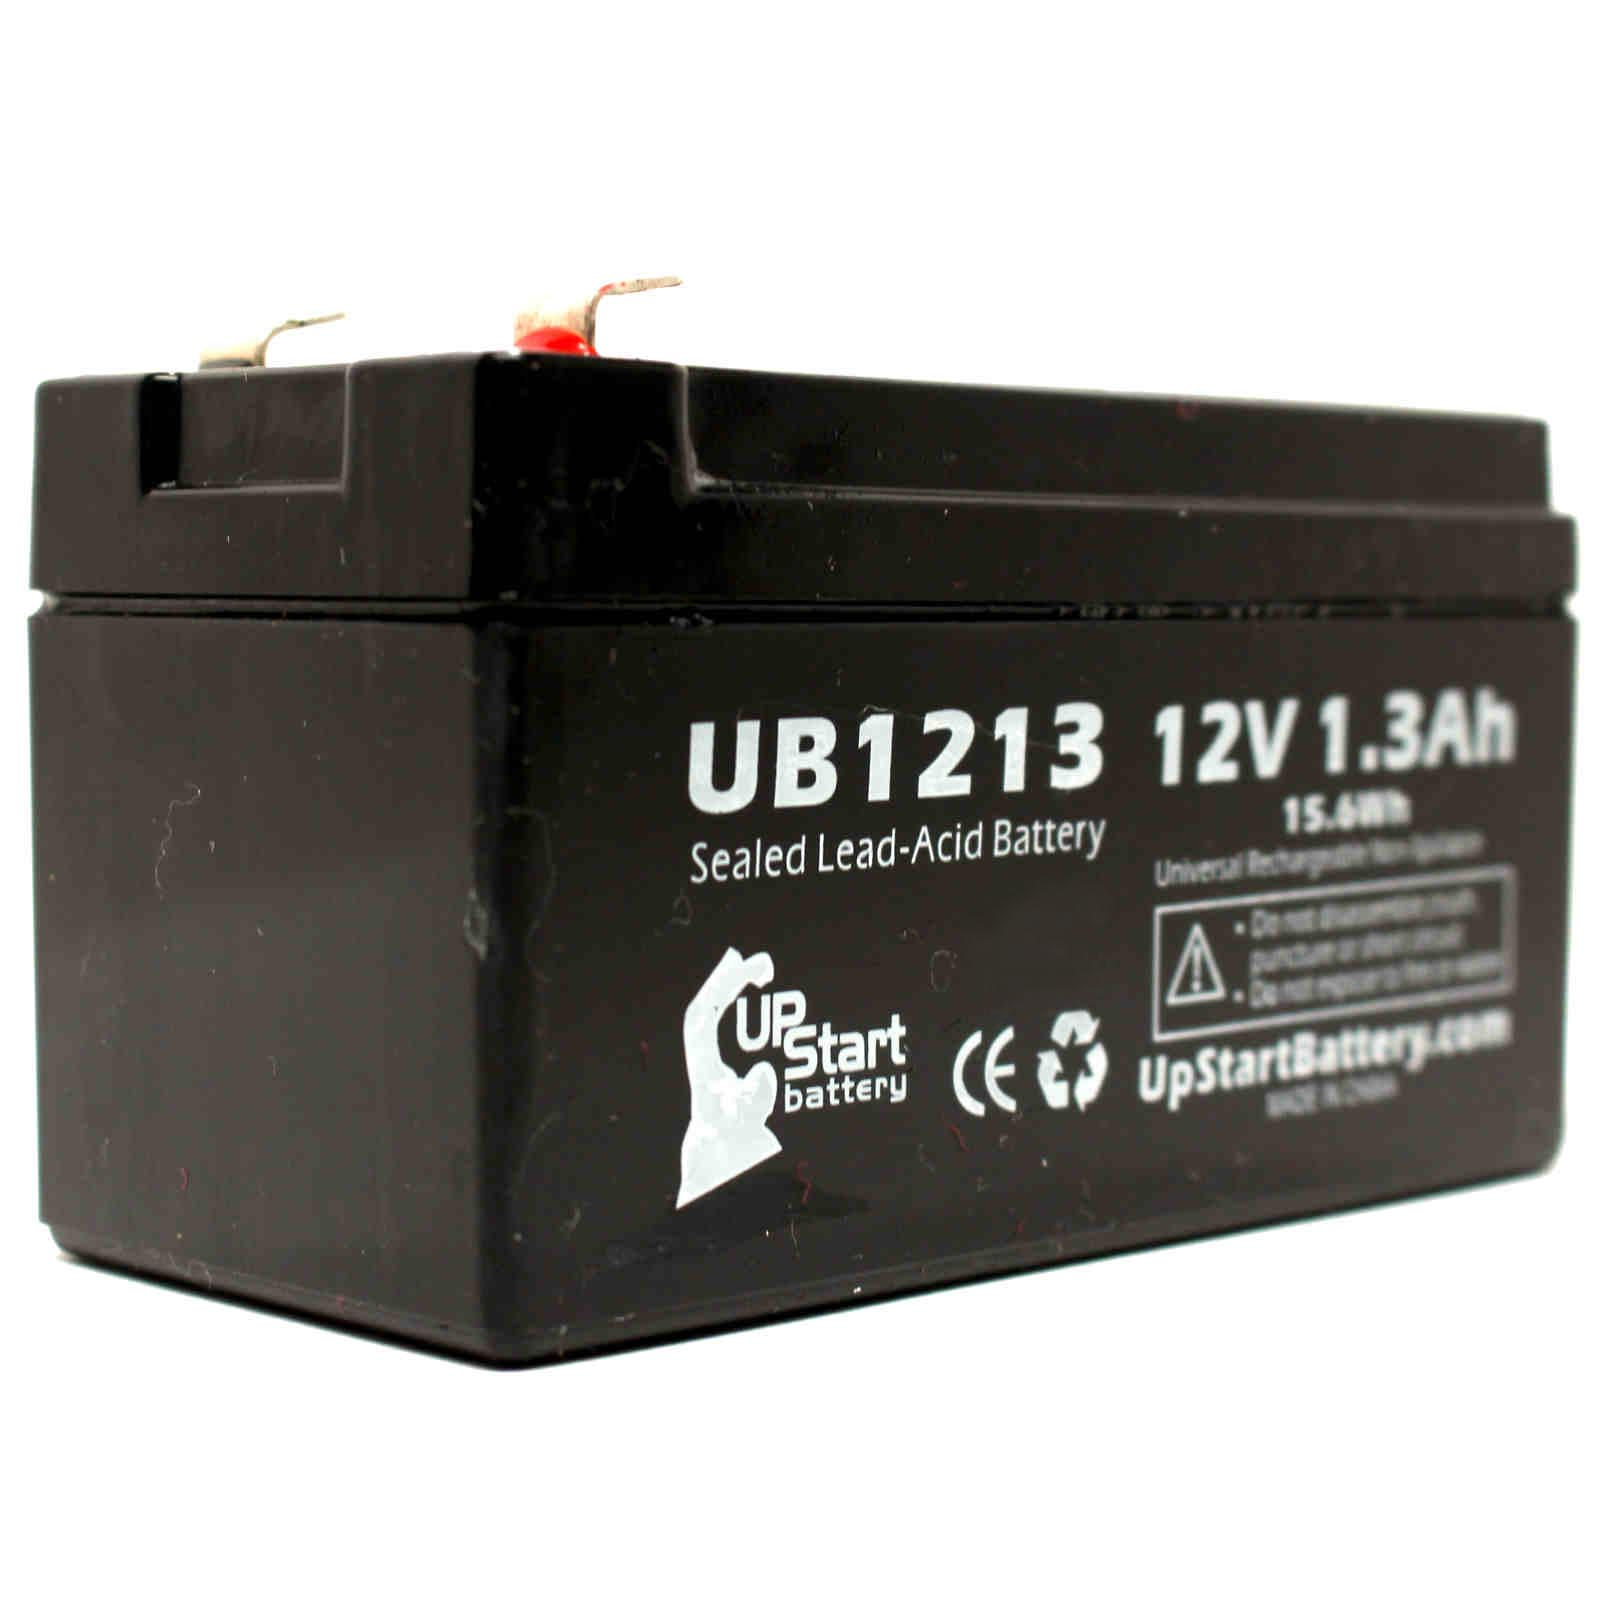 2x Pack - Zeus PC1.3-12 Battery Replacement - UB1213 Universal Sealed Lead Acid Battery (12V, 1.3Ah, 1300mAh, F1 Terminal, AGM, SLA) - Includes 4 F1 to F2 Terminal Adapters - image 3 of 4